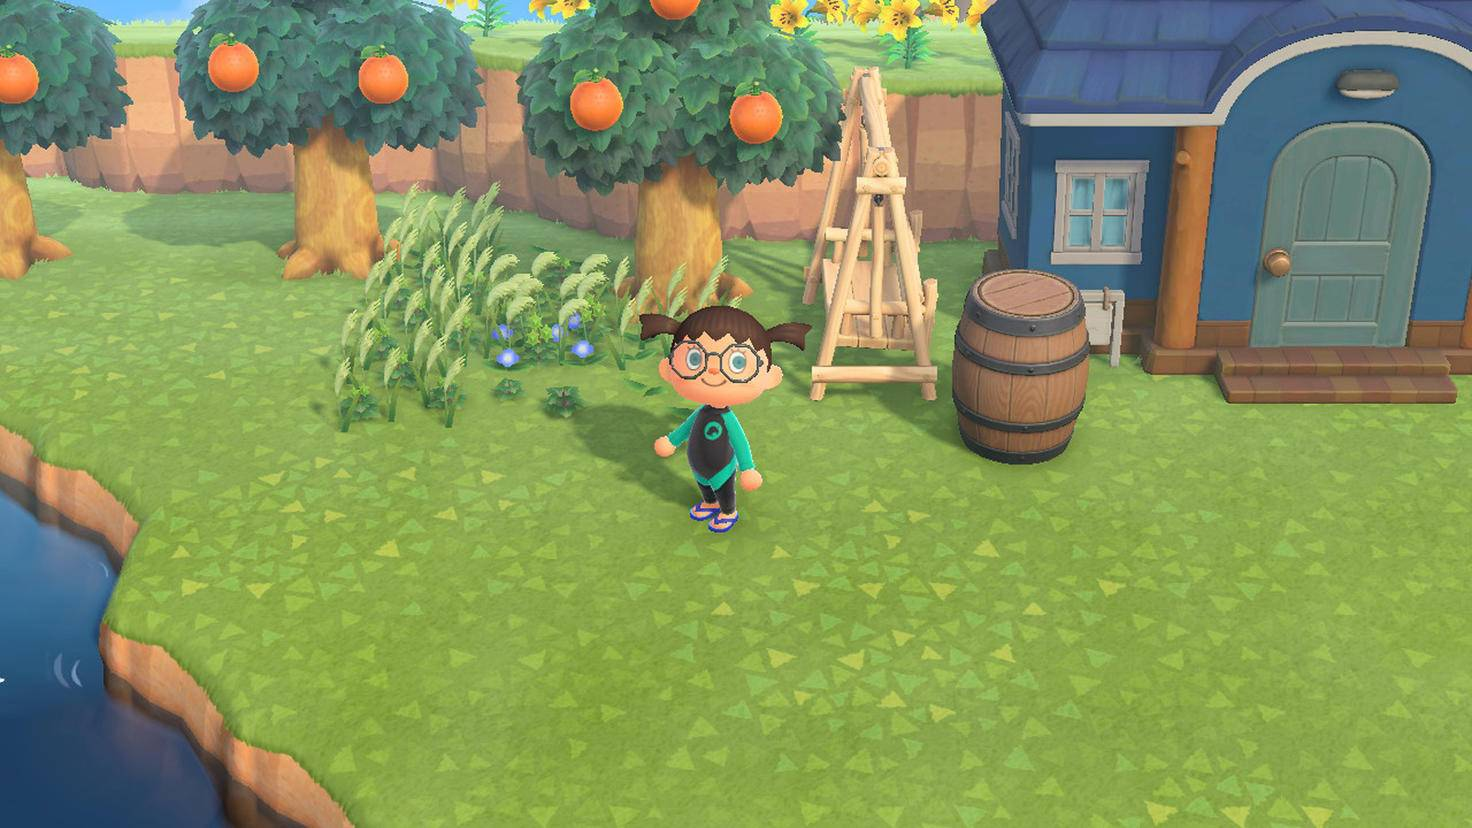 Animal Crossing New Horizons Mauvaises herbes d'automne